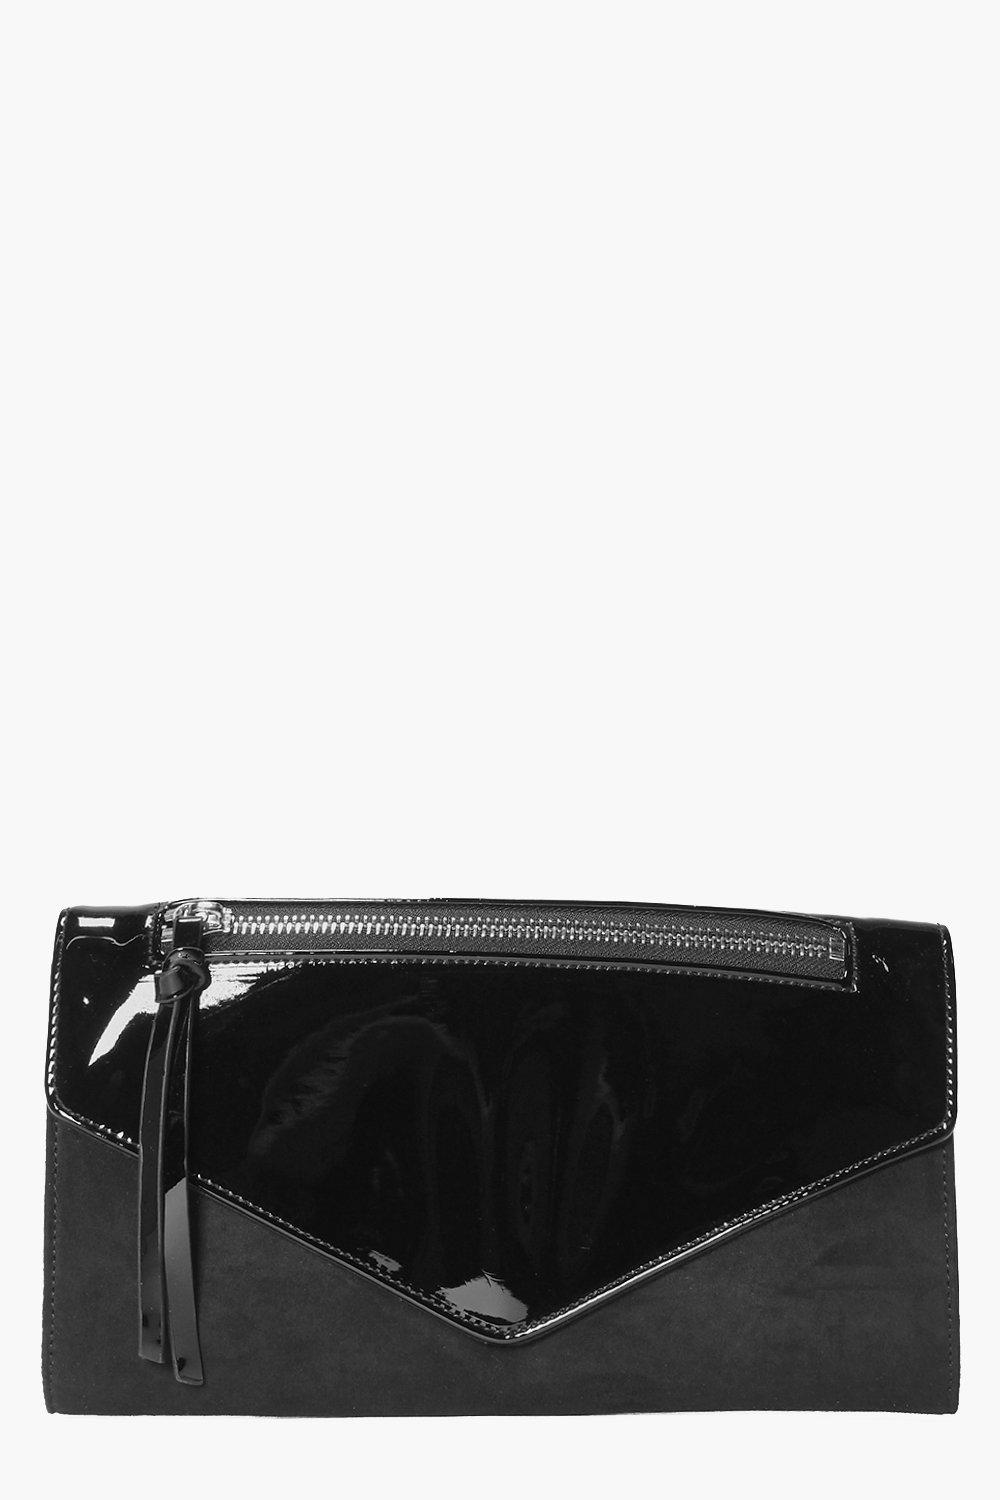 Patent And Suedette Clutch Bag black